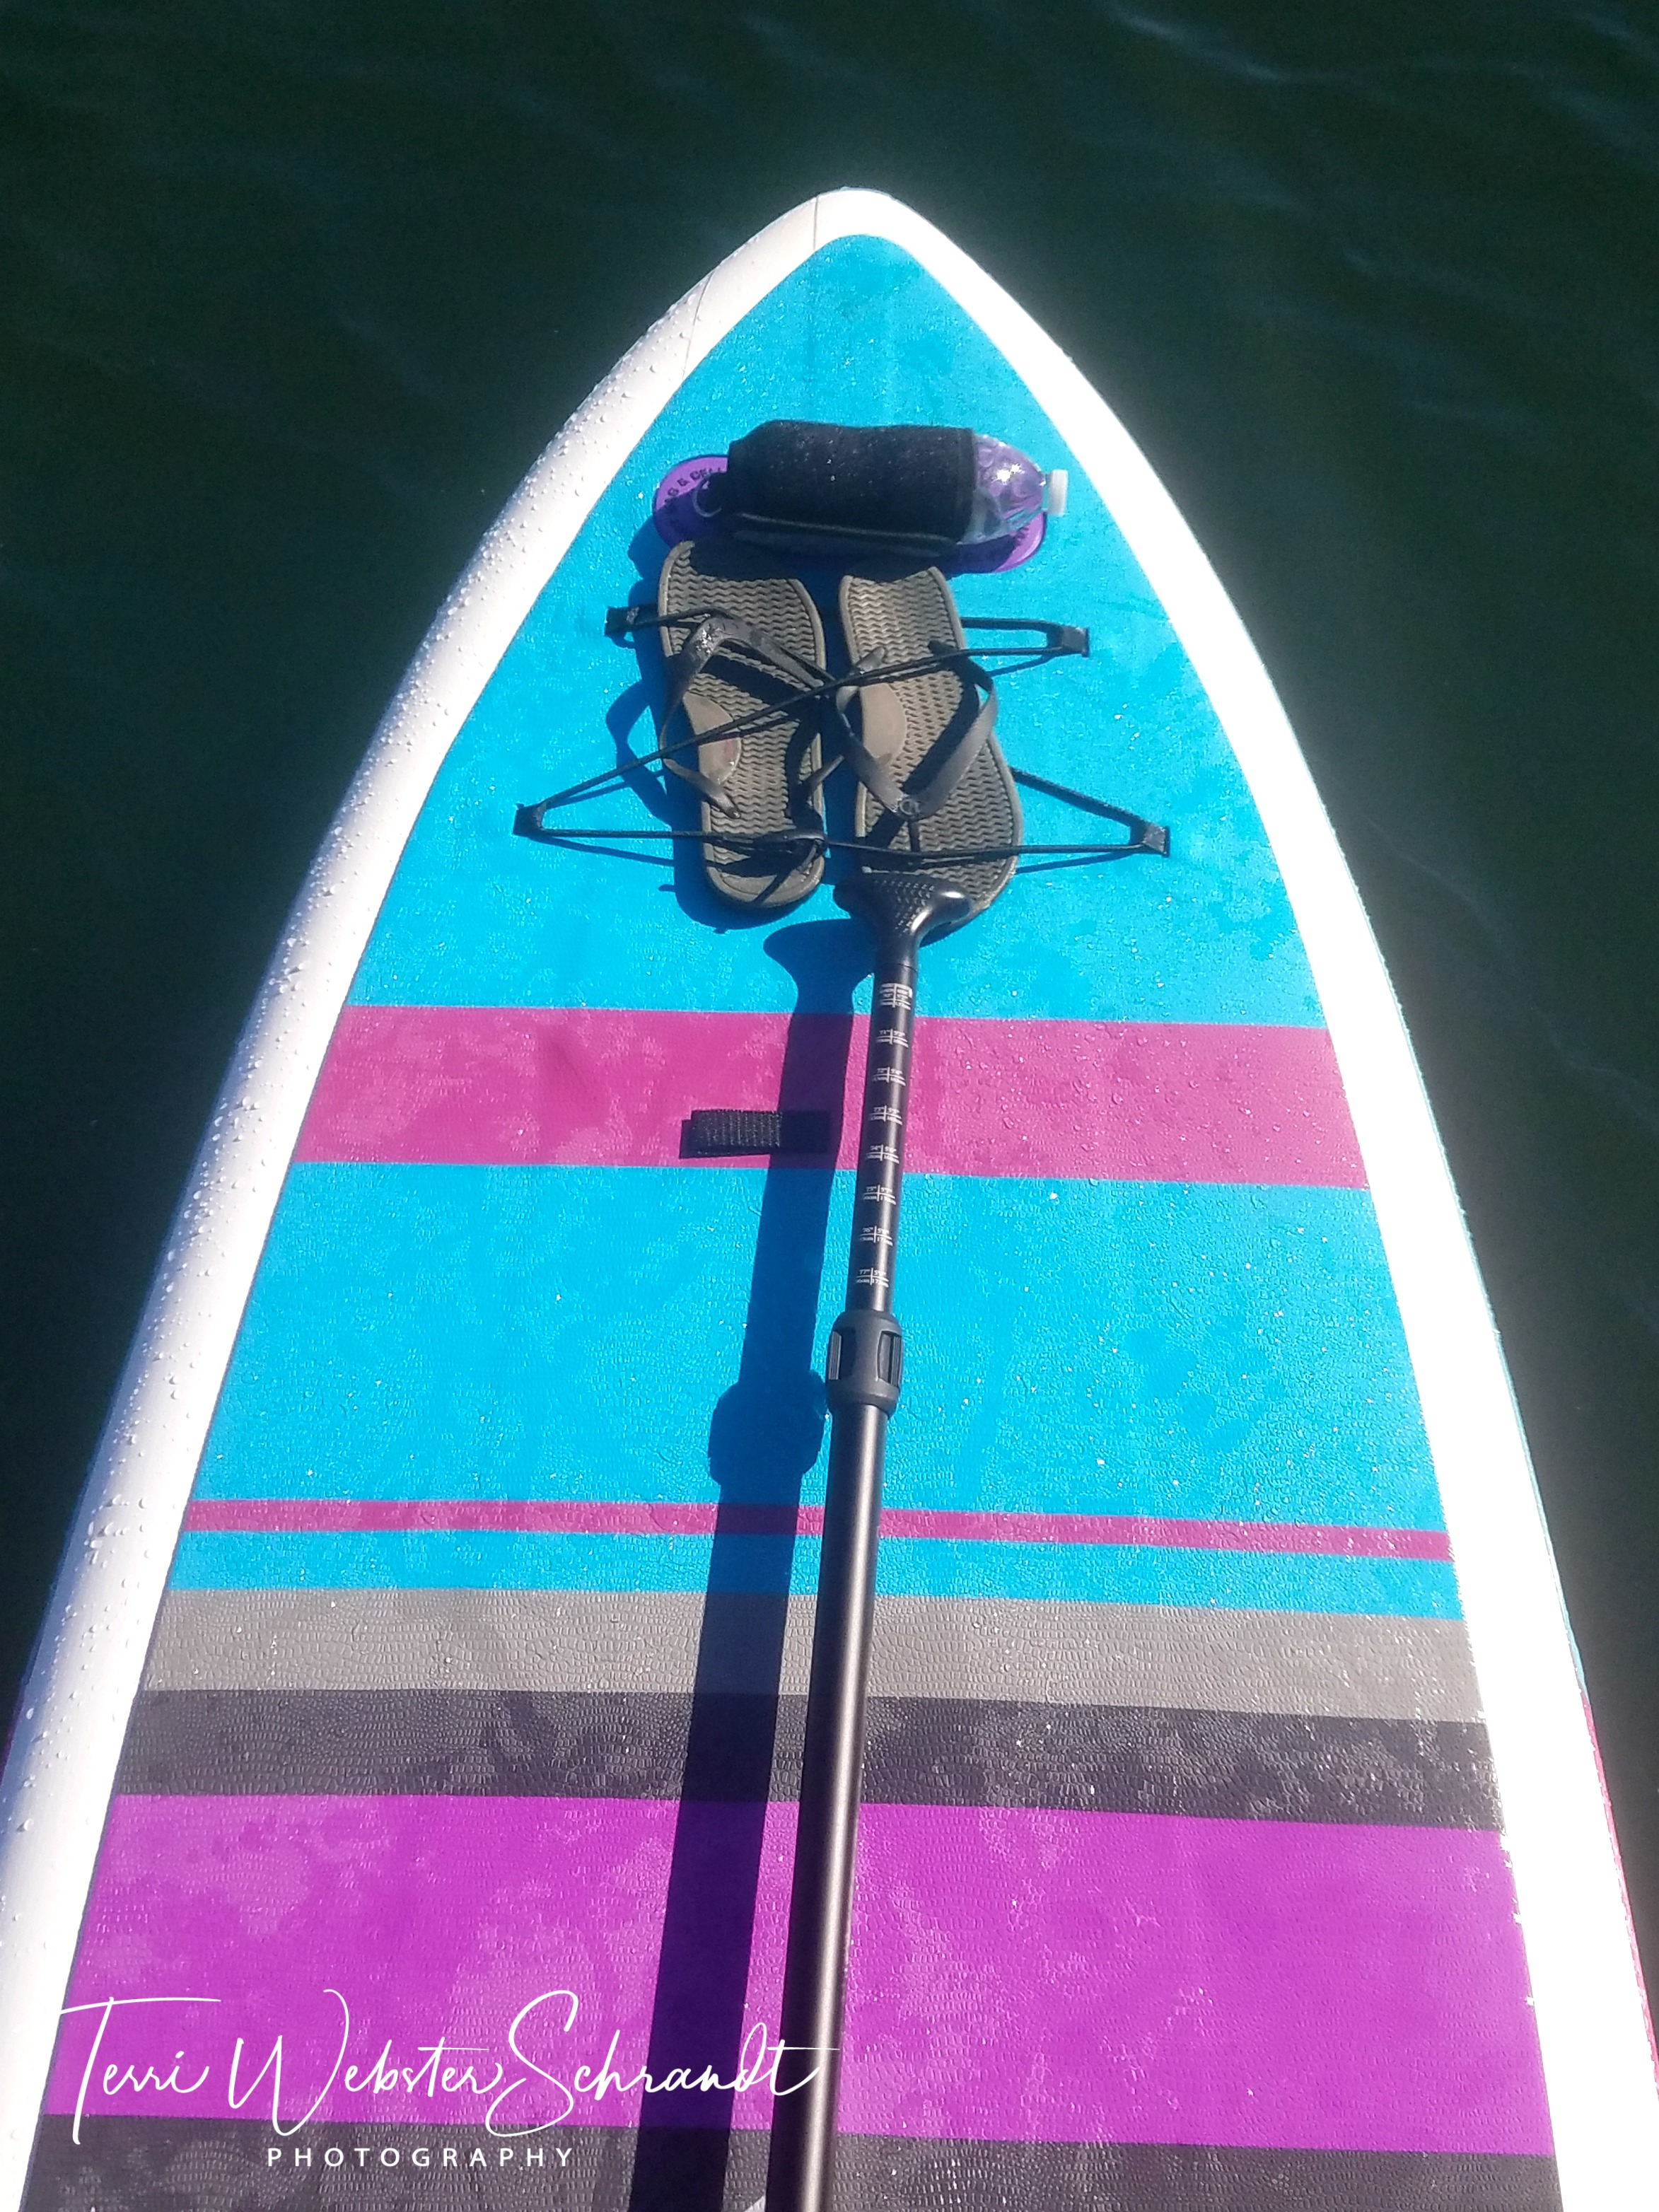 Sunday Stills: Water, #Water Everywhere, My #Paddleboard Can Shrink